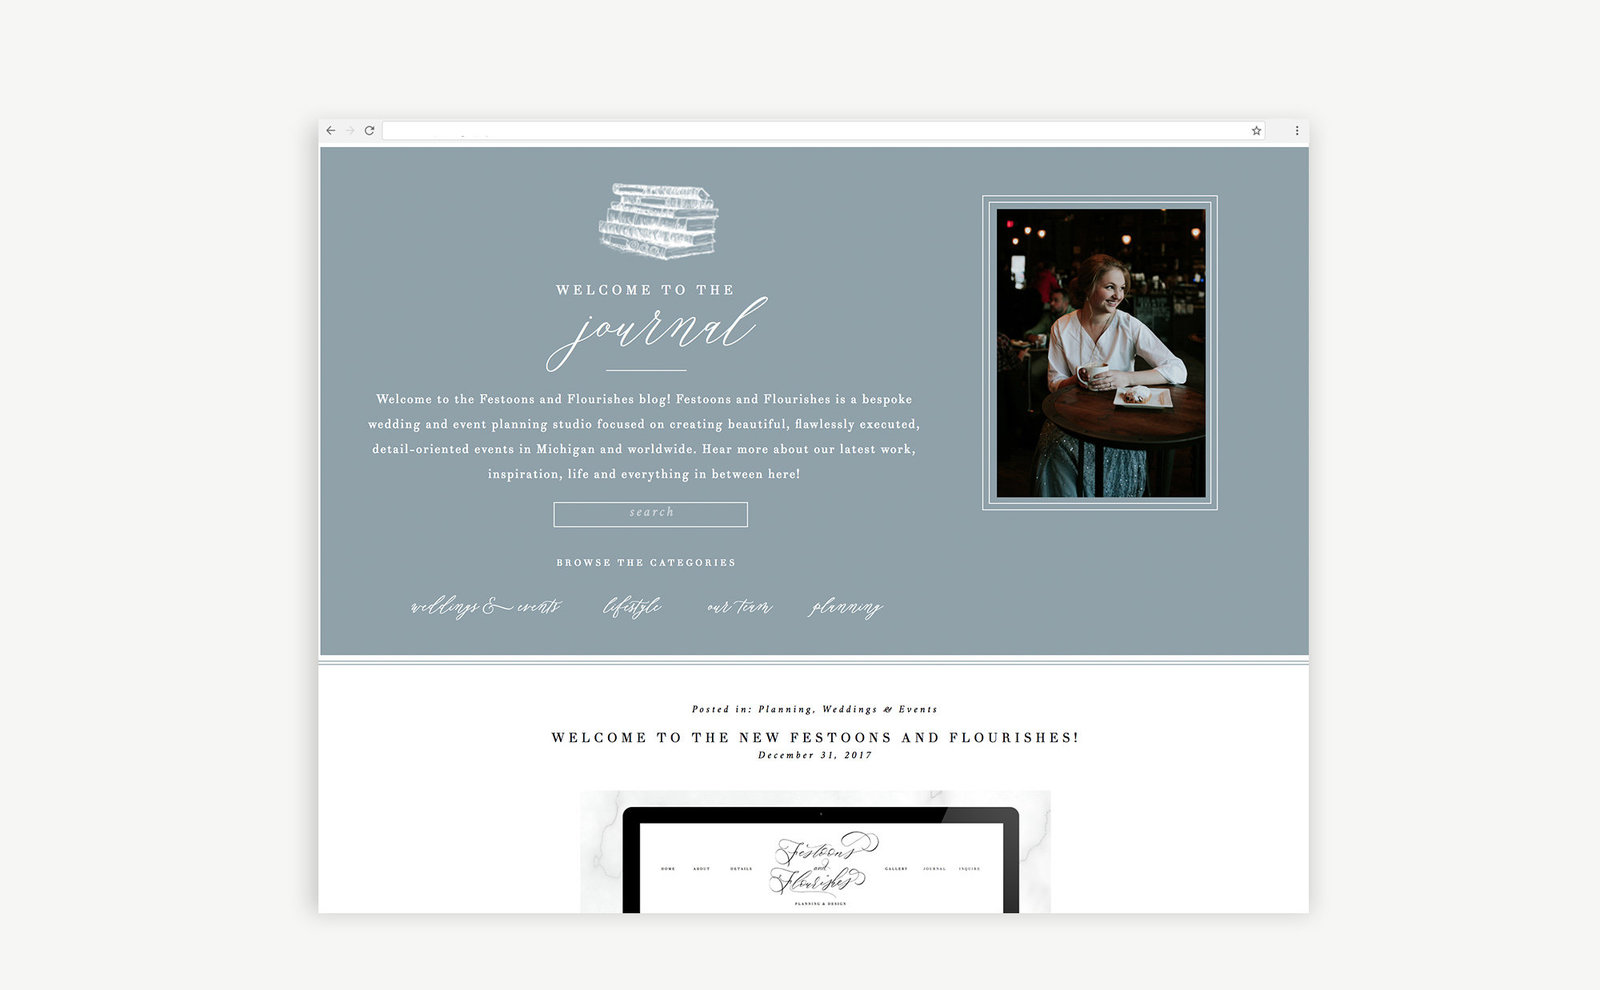 showit-website-branding-for-wedding-businesses-festoons-05